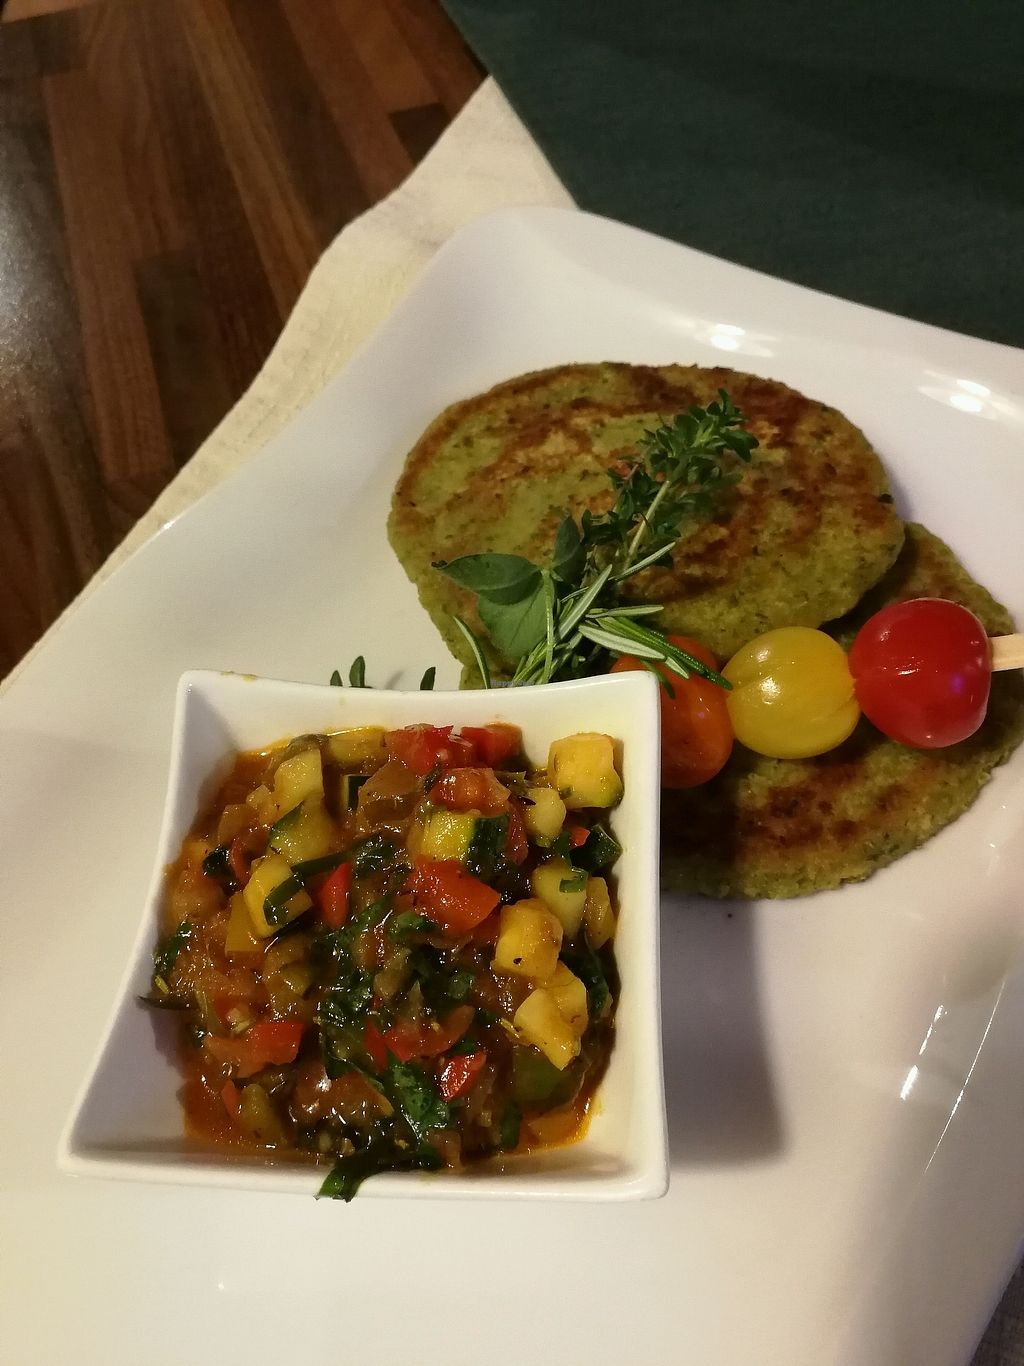 """Photo of Gasthaus zur Kohlstatt  by <a href=""""/members/profile/AvocadoSid"""">AvocadoSid</a> <br/>Chickpea patties with veggies <br/> April 14, 2018  - <a href='/contact/abuse/image/69348/385884'>Report</a>"""